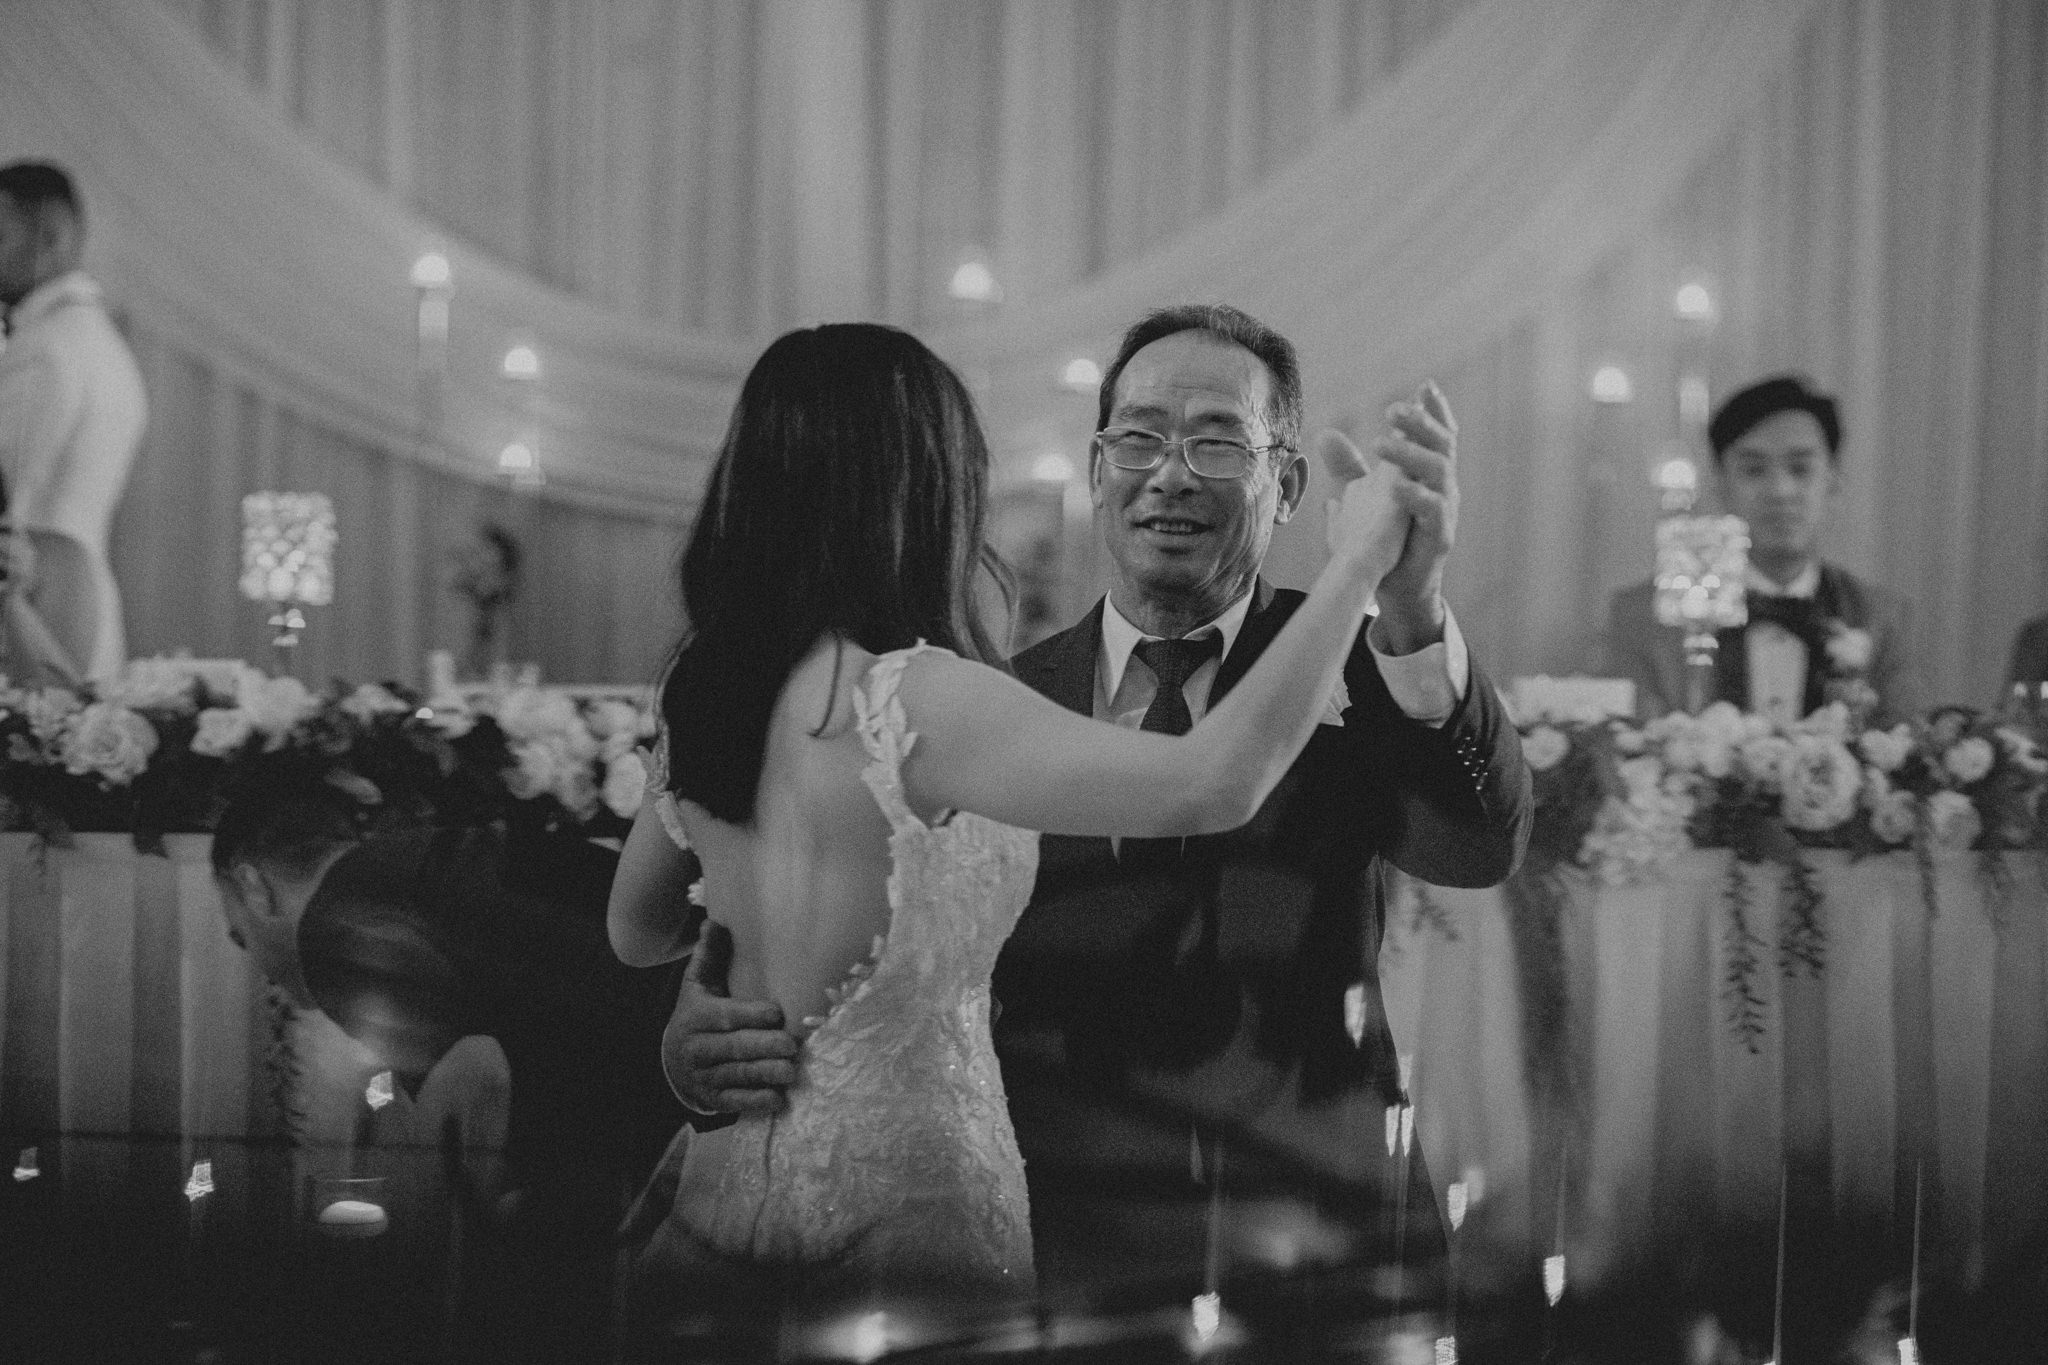 An elderly asian man dances with his daughter at her wedding